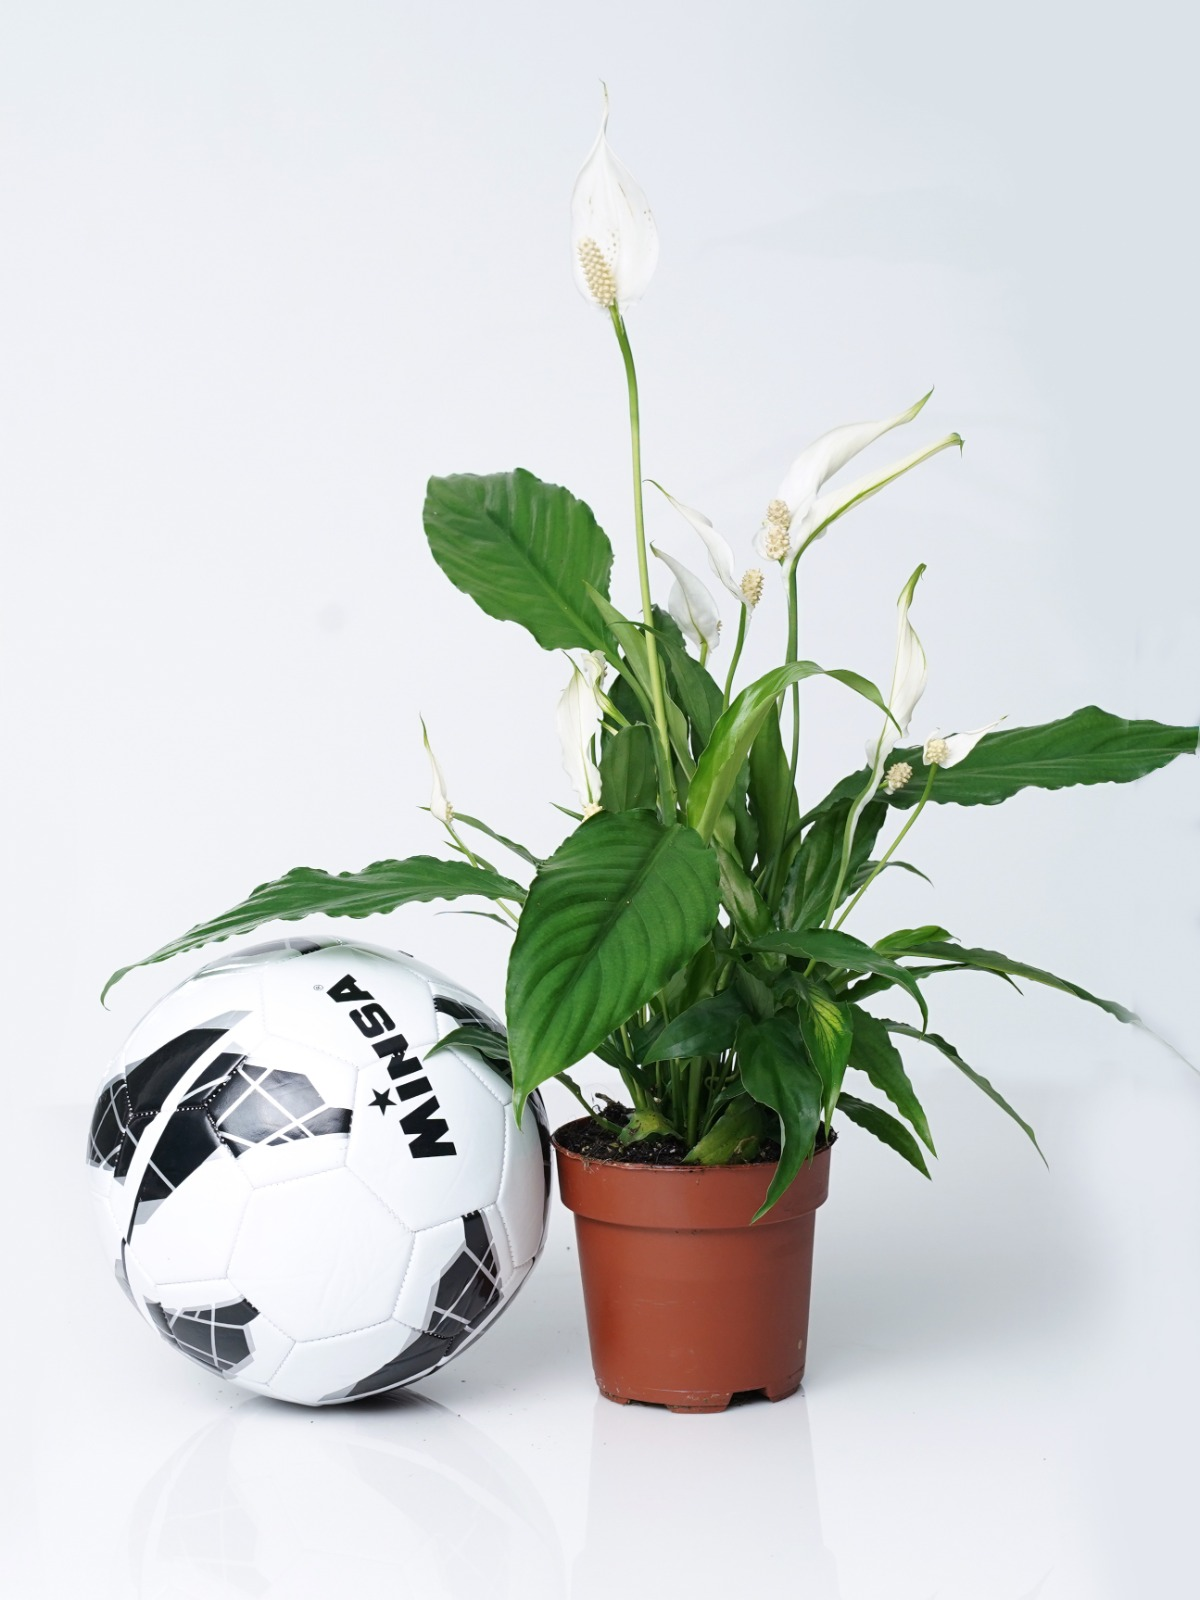 Spathiphyllum-Peace Lily 'Indoor Plants Flowering Plants